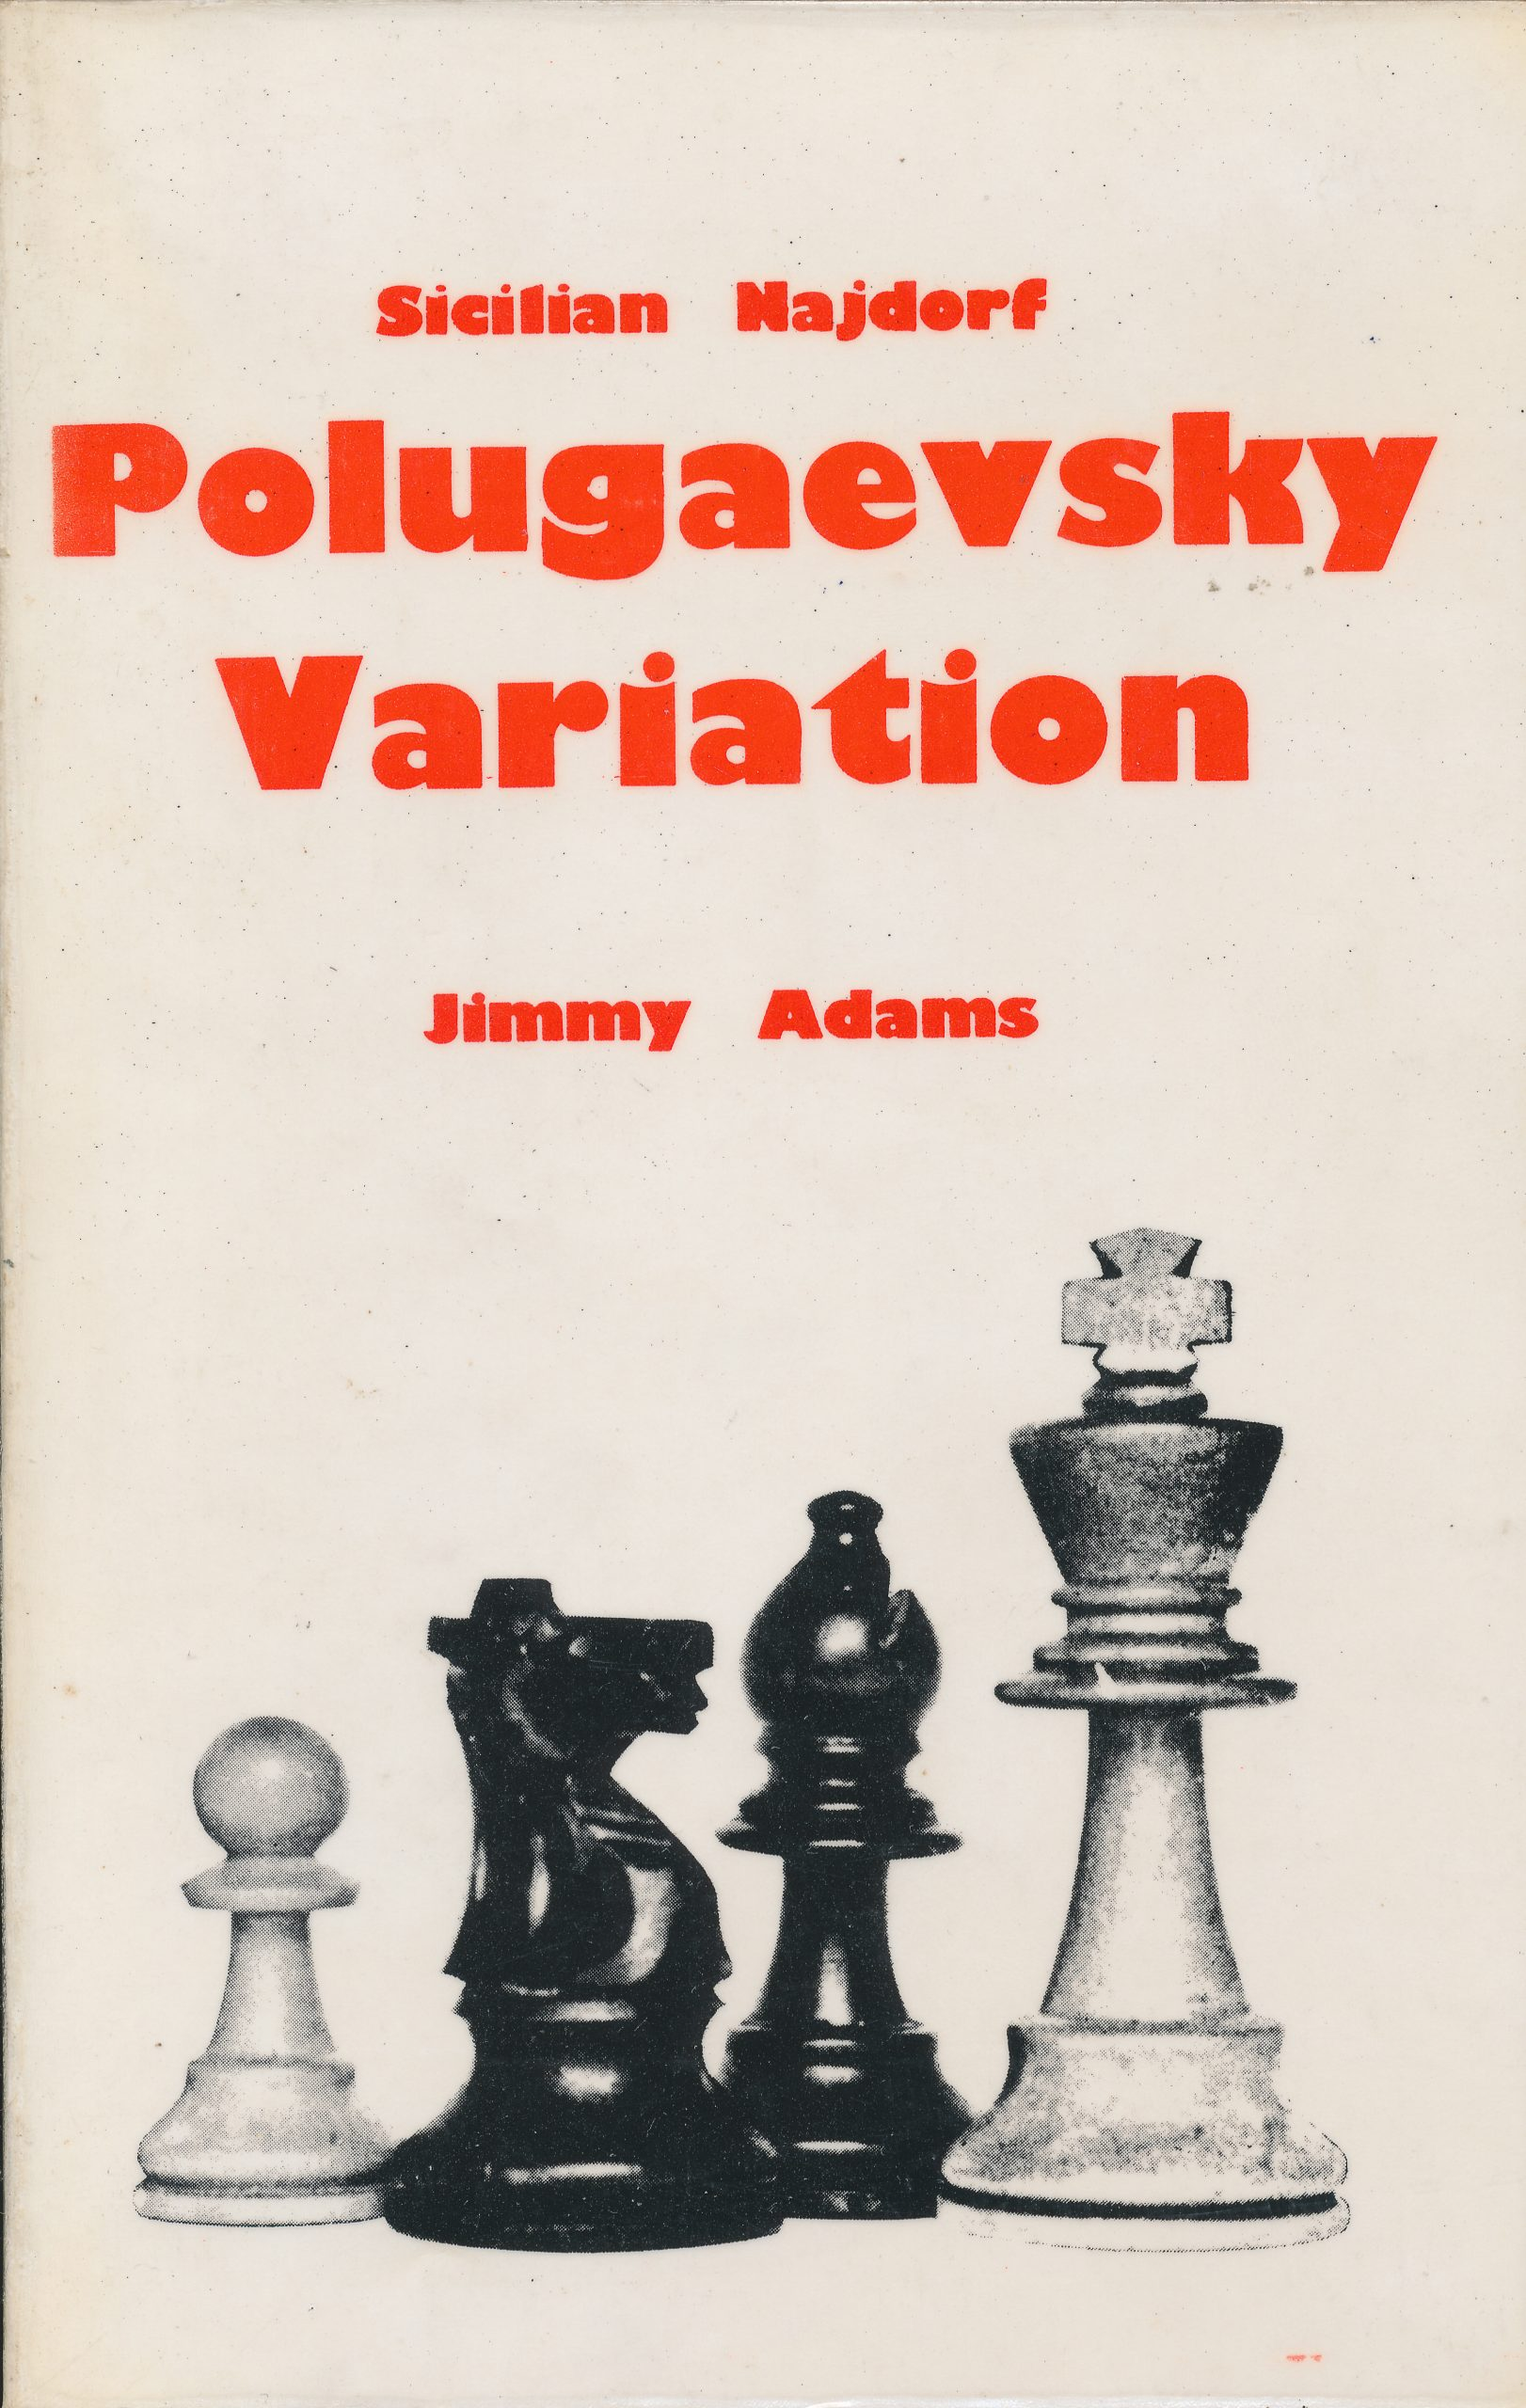 Sicilian Najdorf Polugaevsky Variation, Jimmy Adams, The Chess Player, 1978